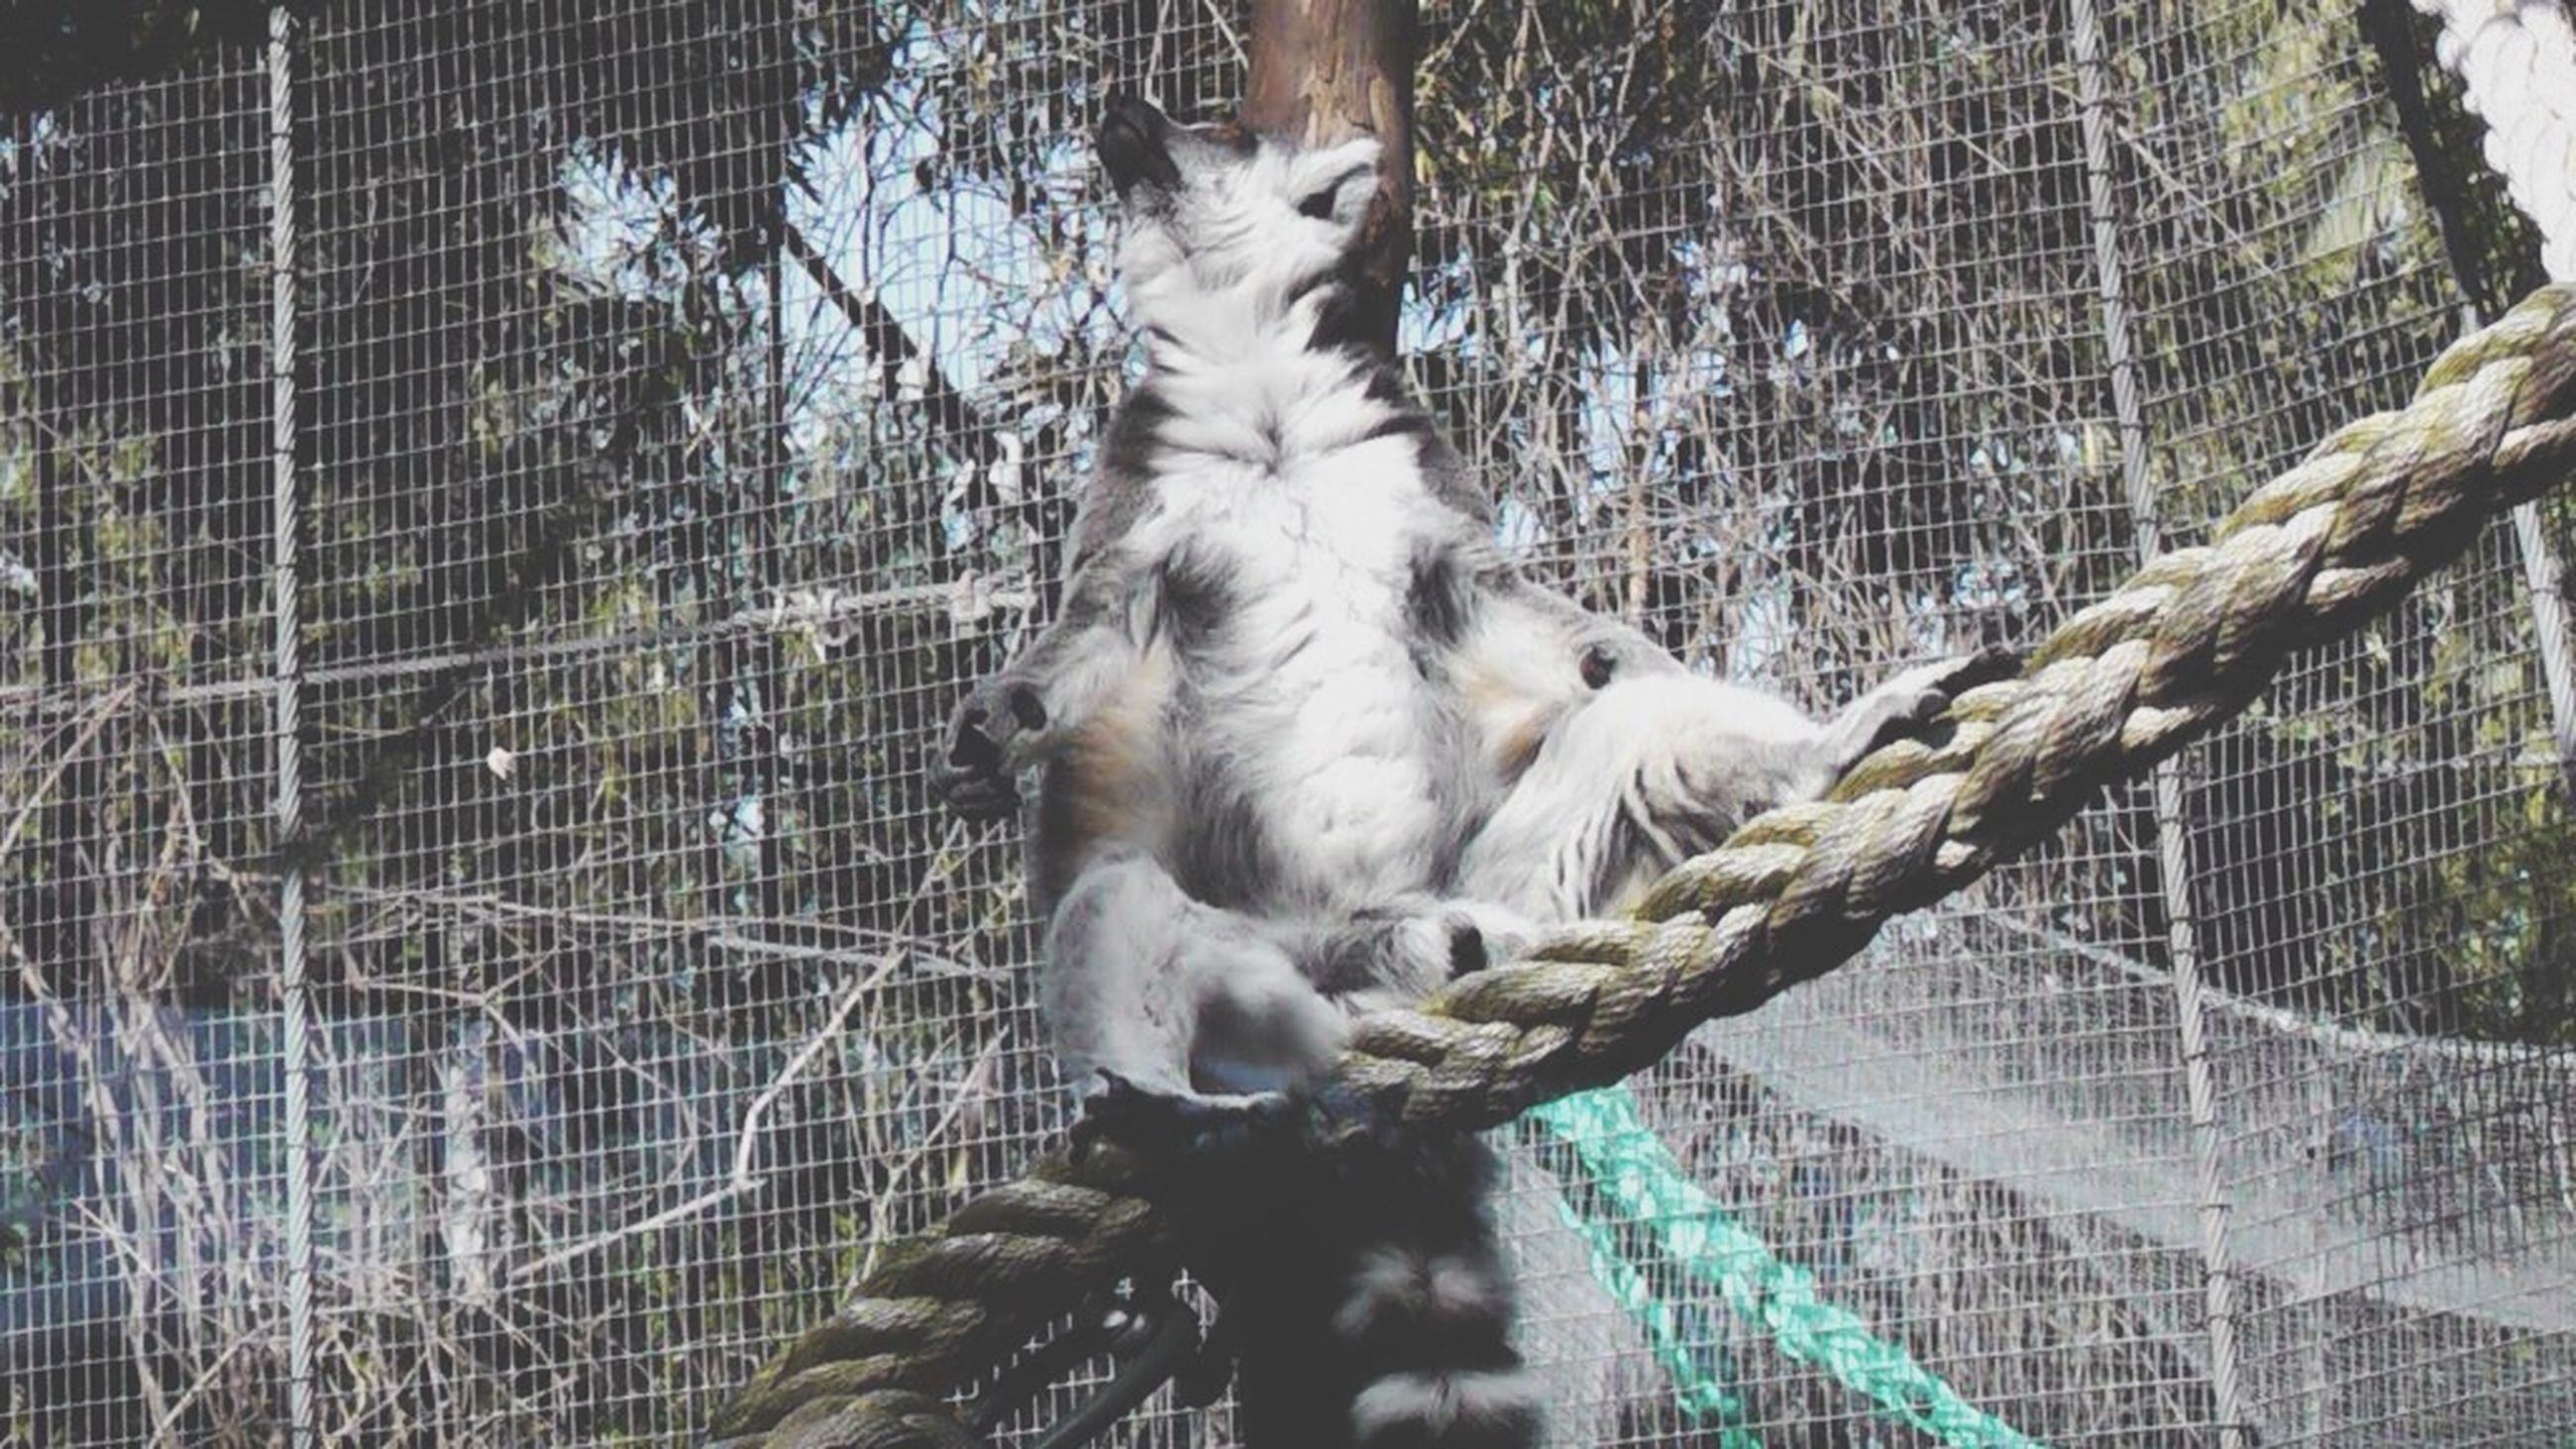 animal themes, one animal, fence, chainlink fence, bird, animals in the wild, wildlife, cage, mammal, animals in captivity, domestic animals, focus on foreground, day, protection, close-up, outdoors, metal, branch, one person, two animals